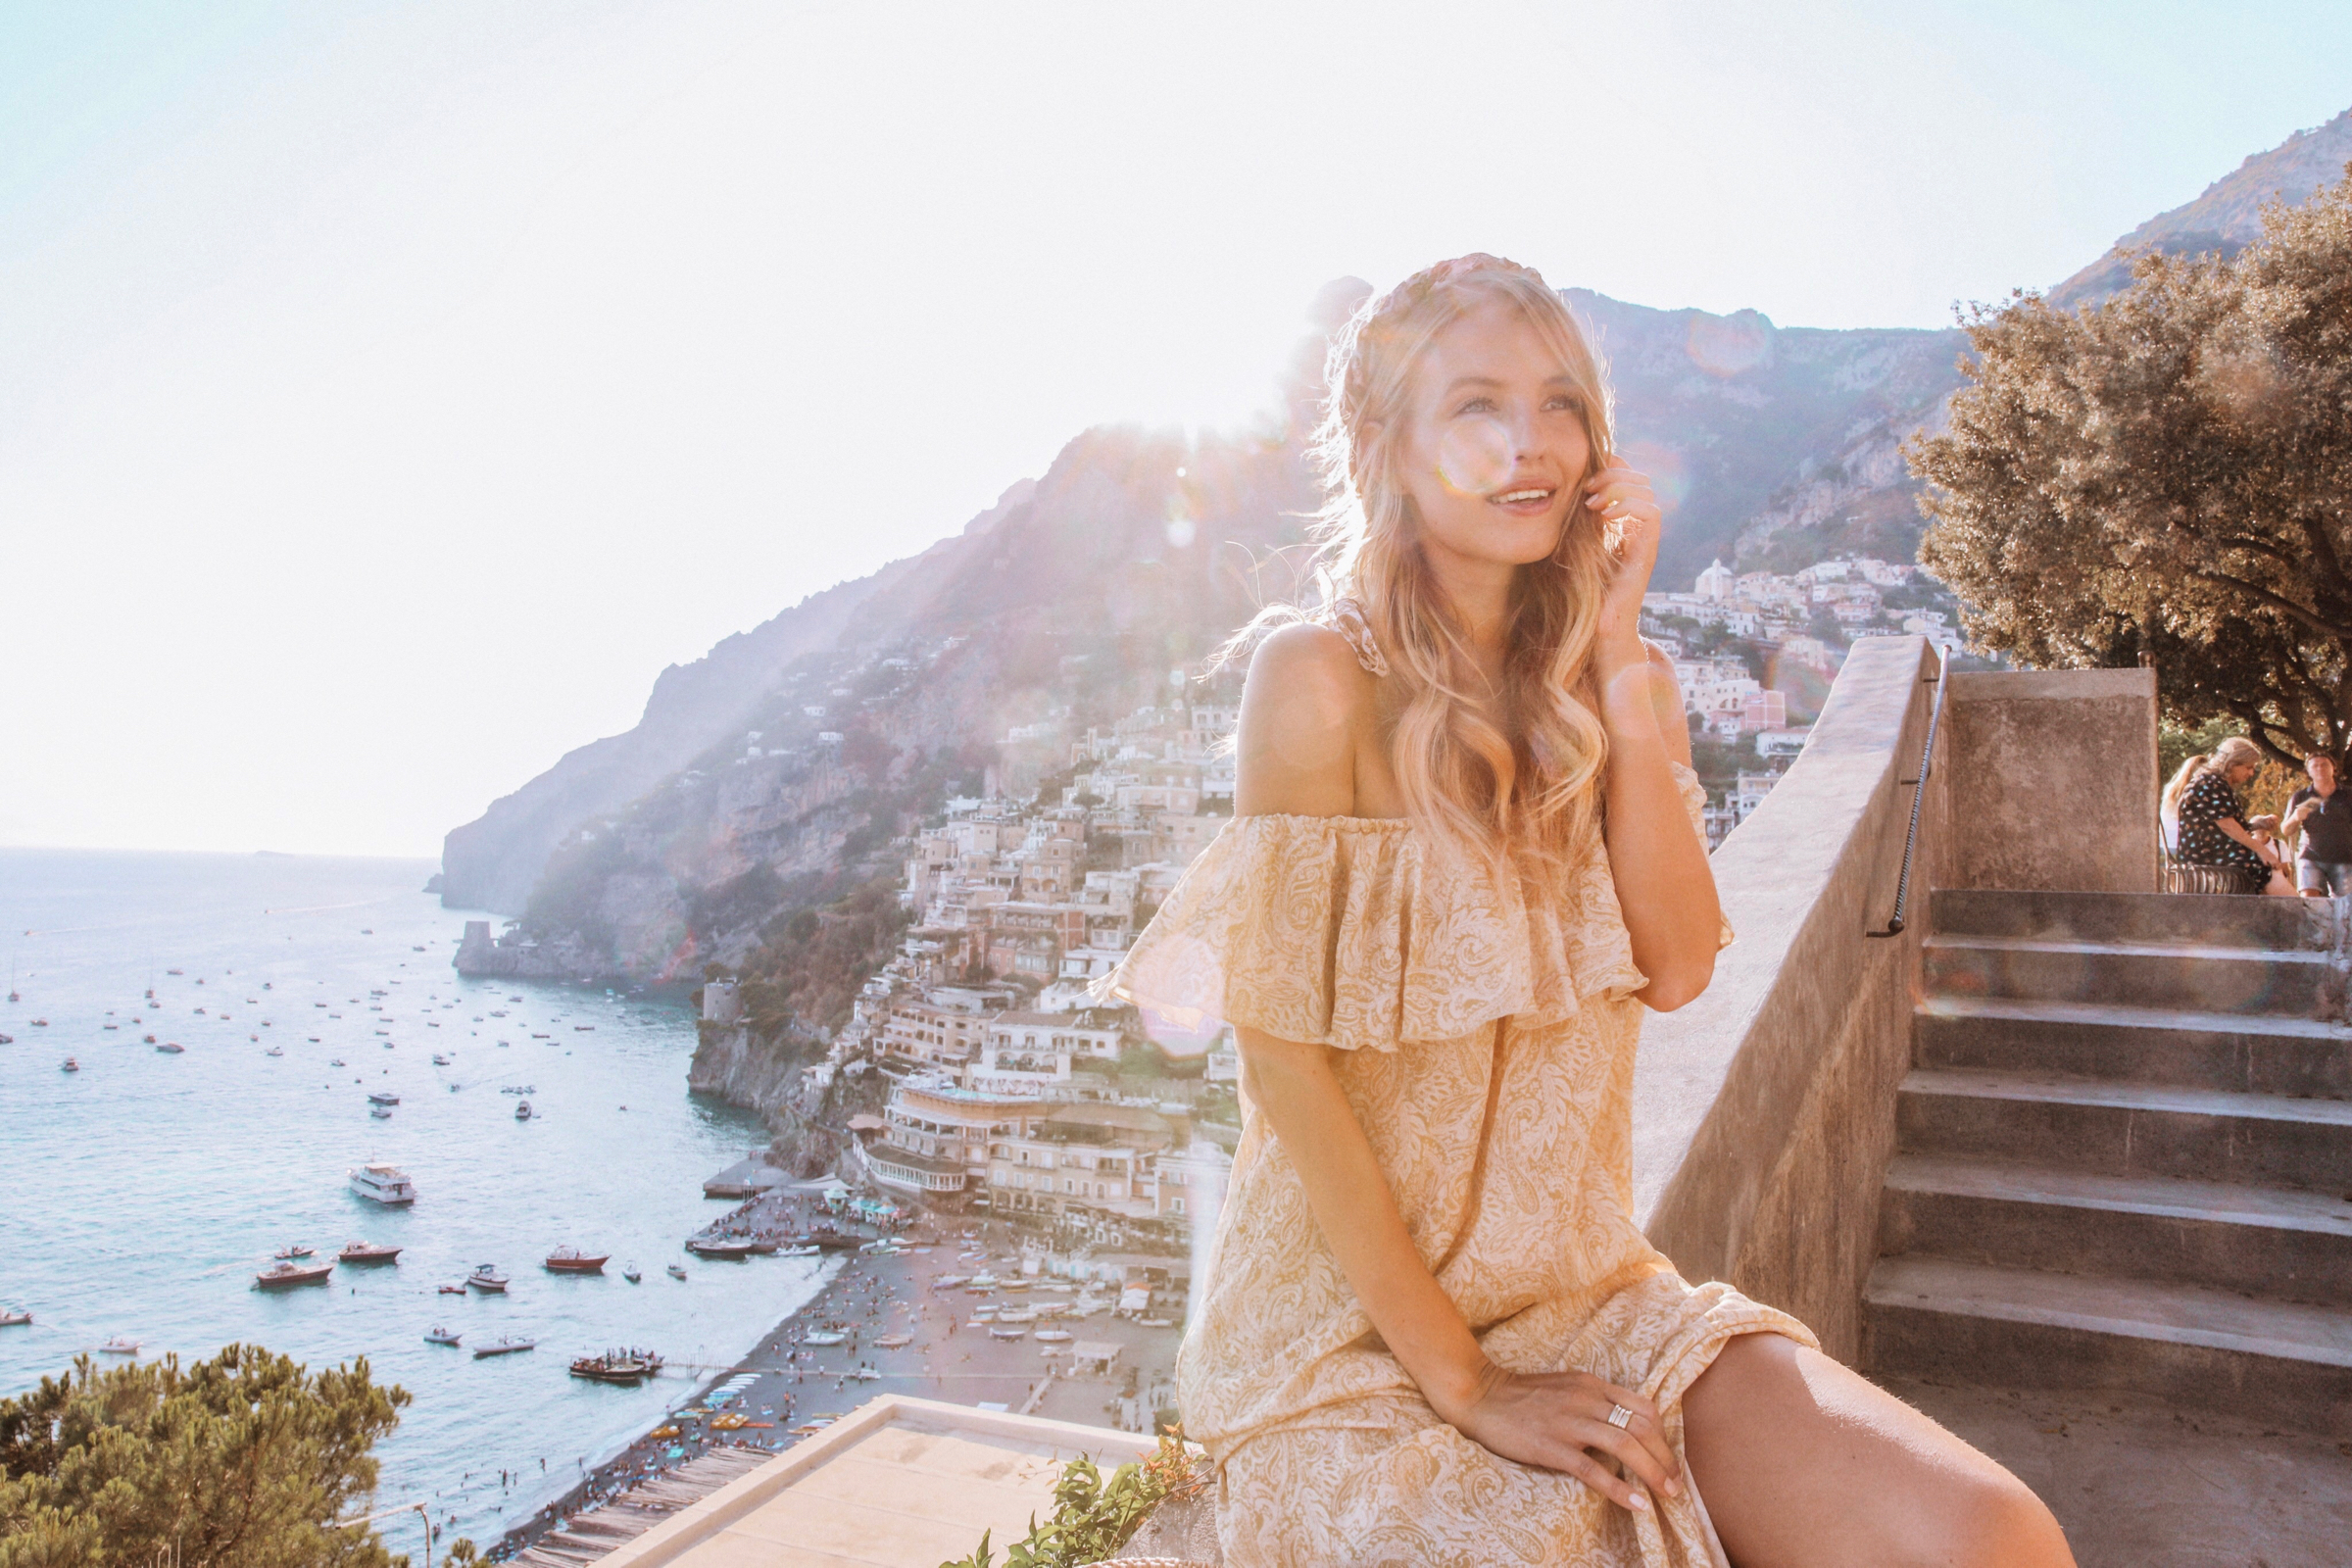 Limonchello-colored dress | Positano